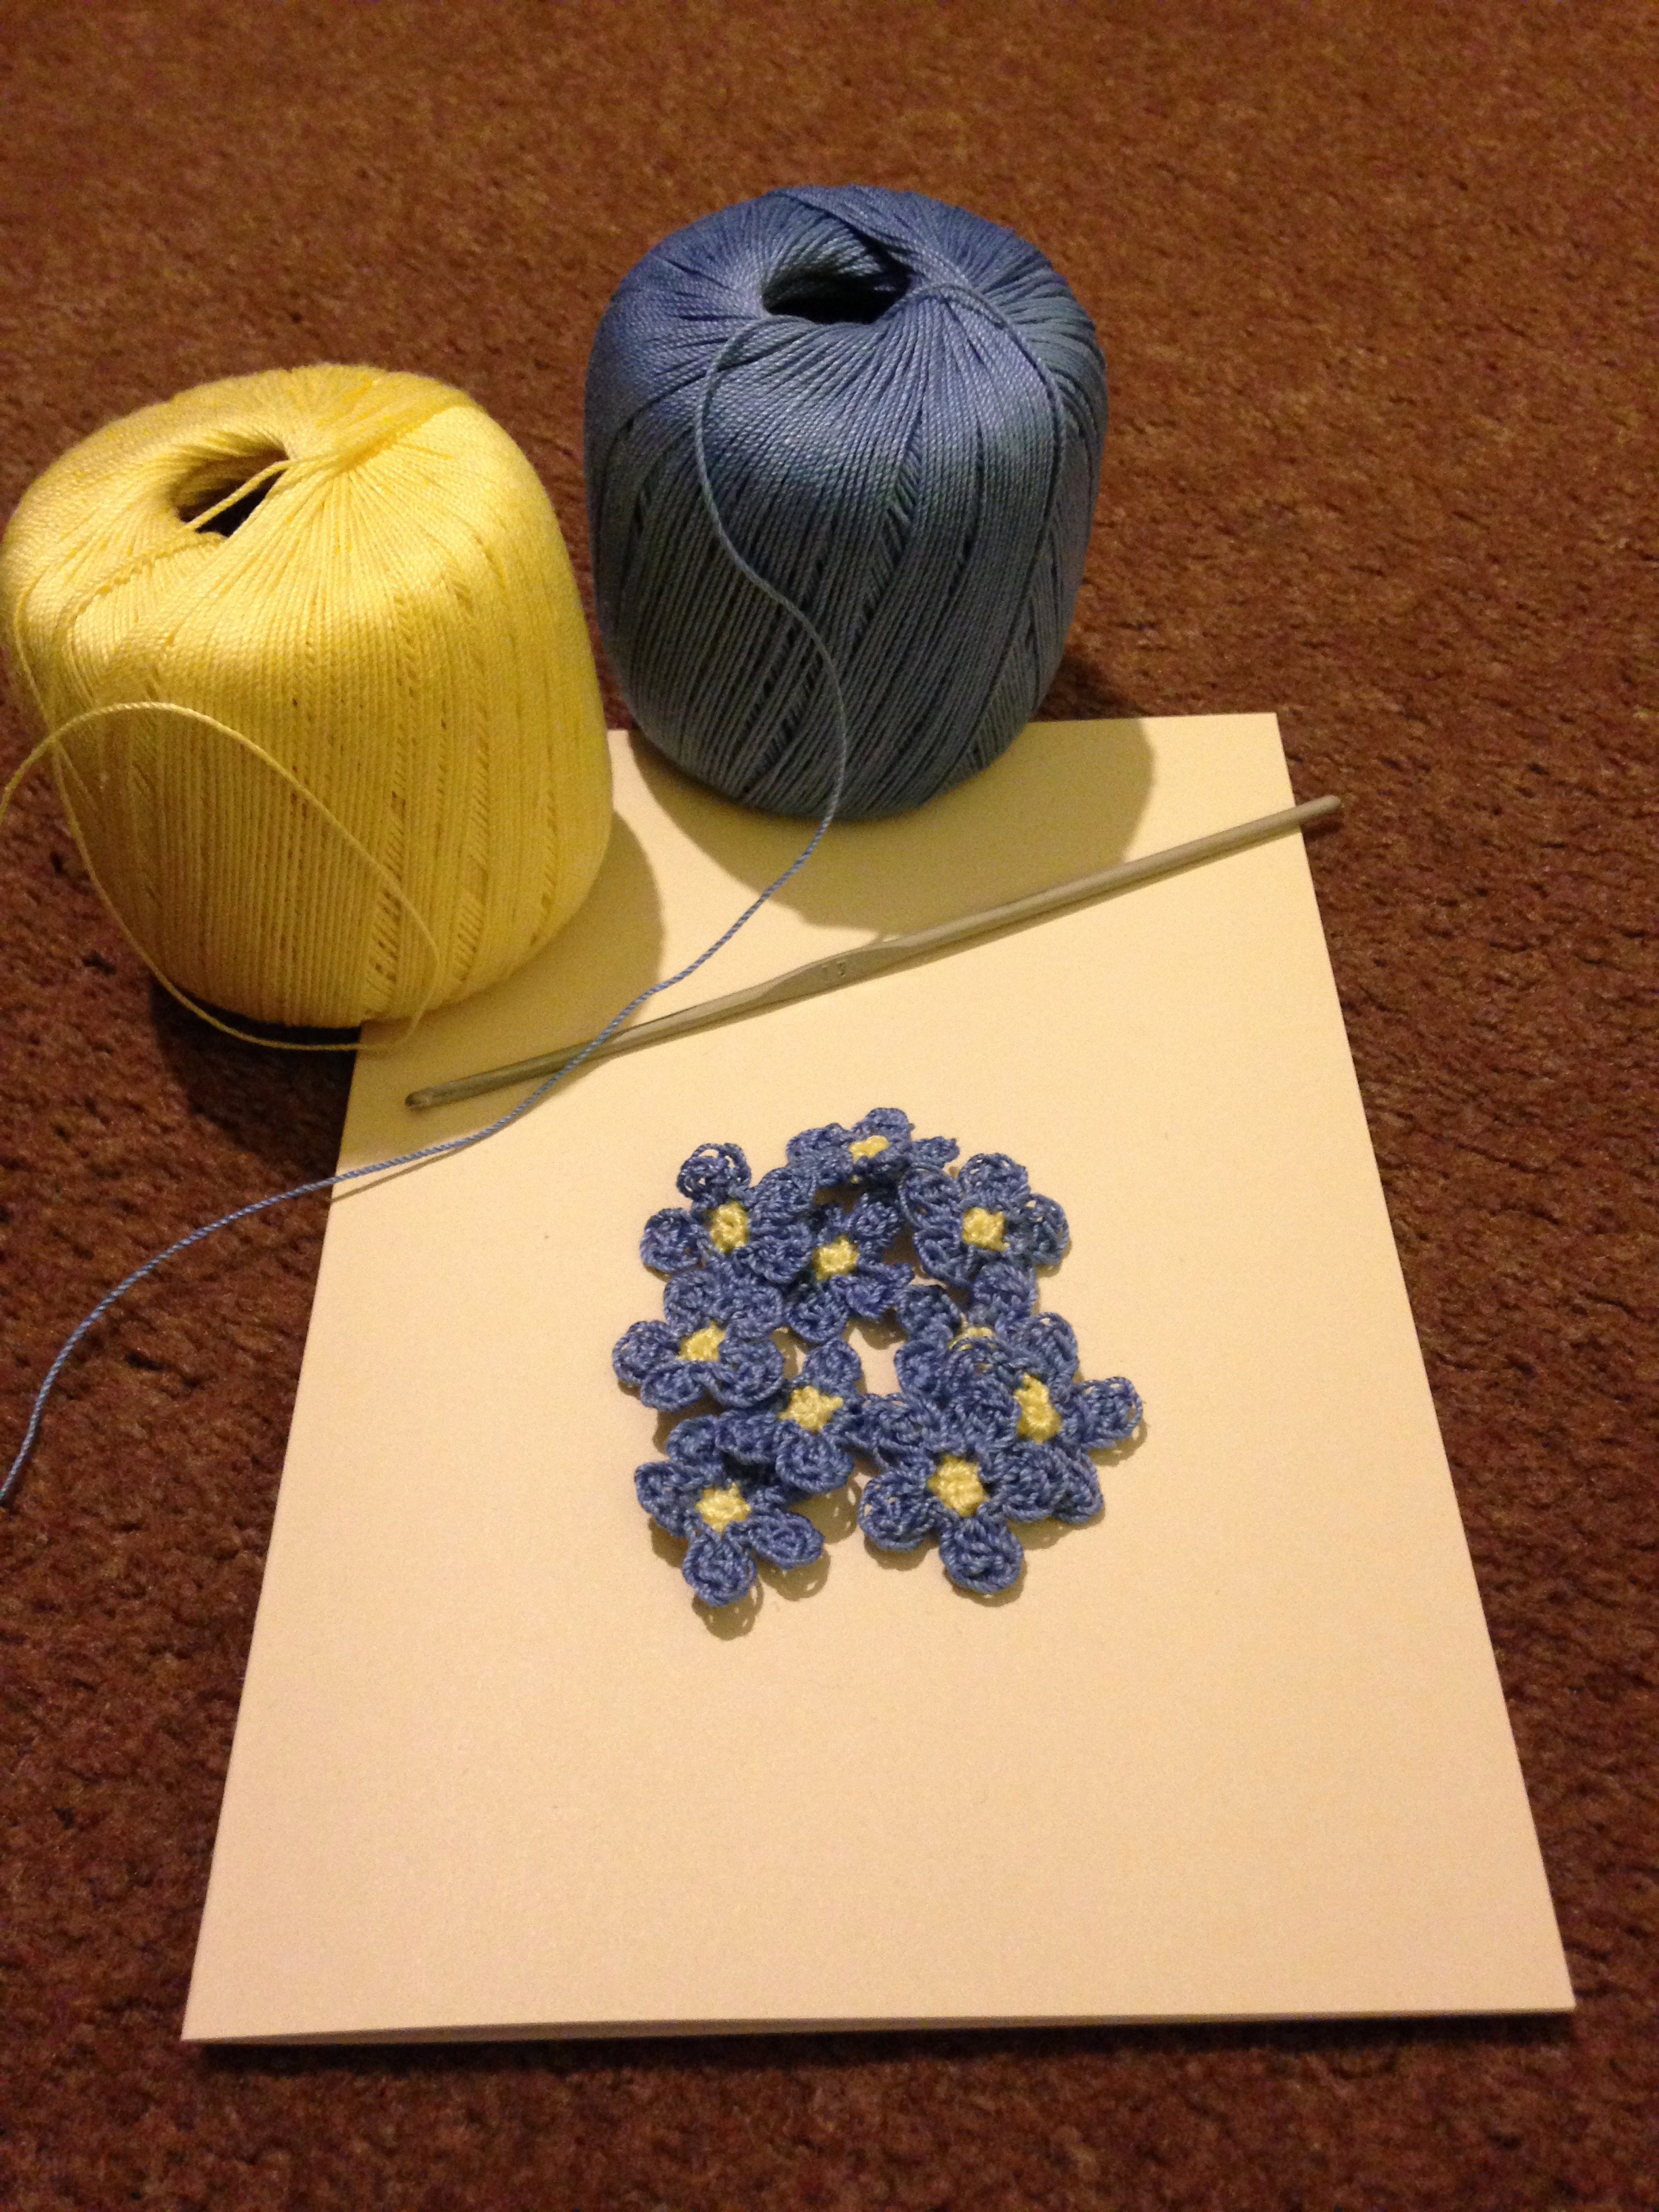 A hand stitched and crocheted greetings card with pale blue Forget-me-not flowers and green leaves.